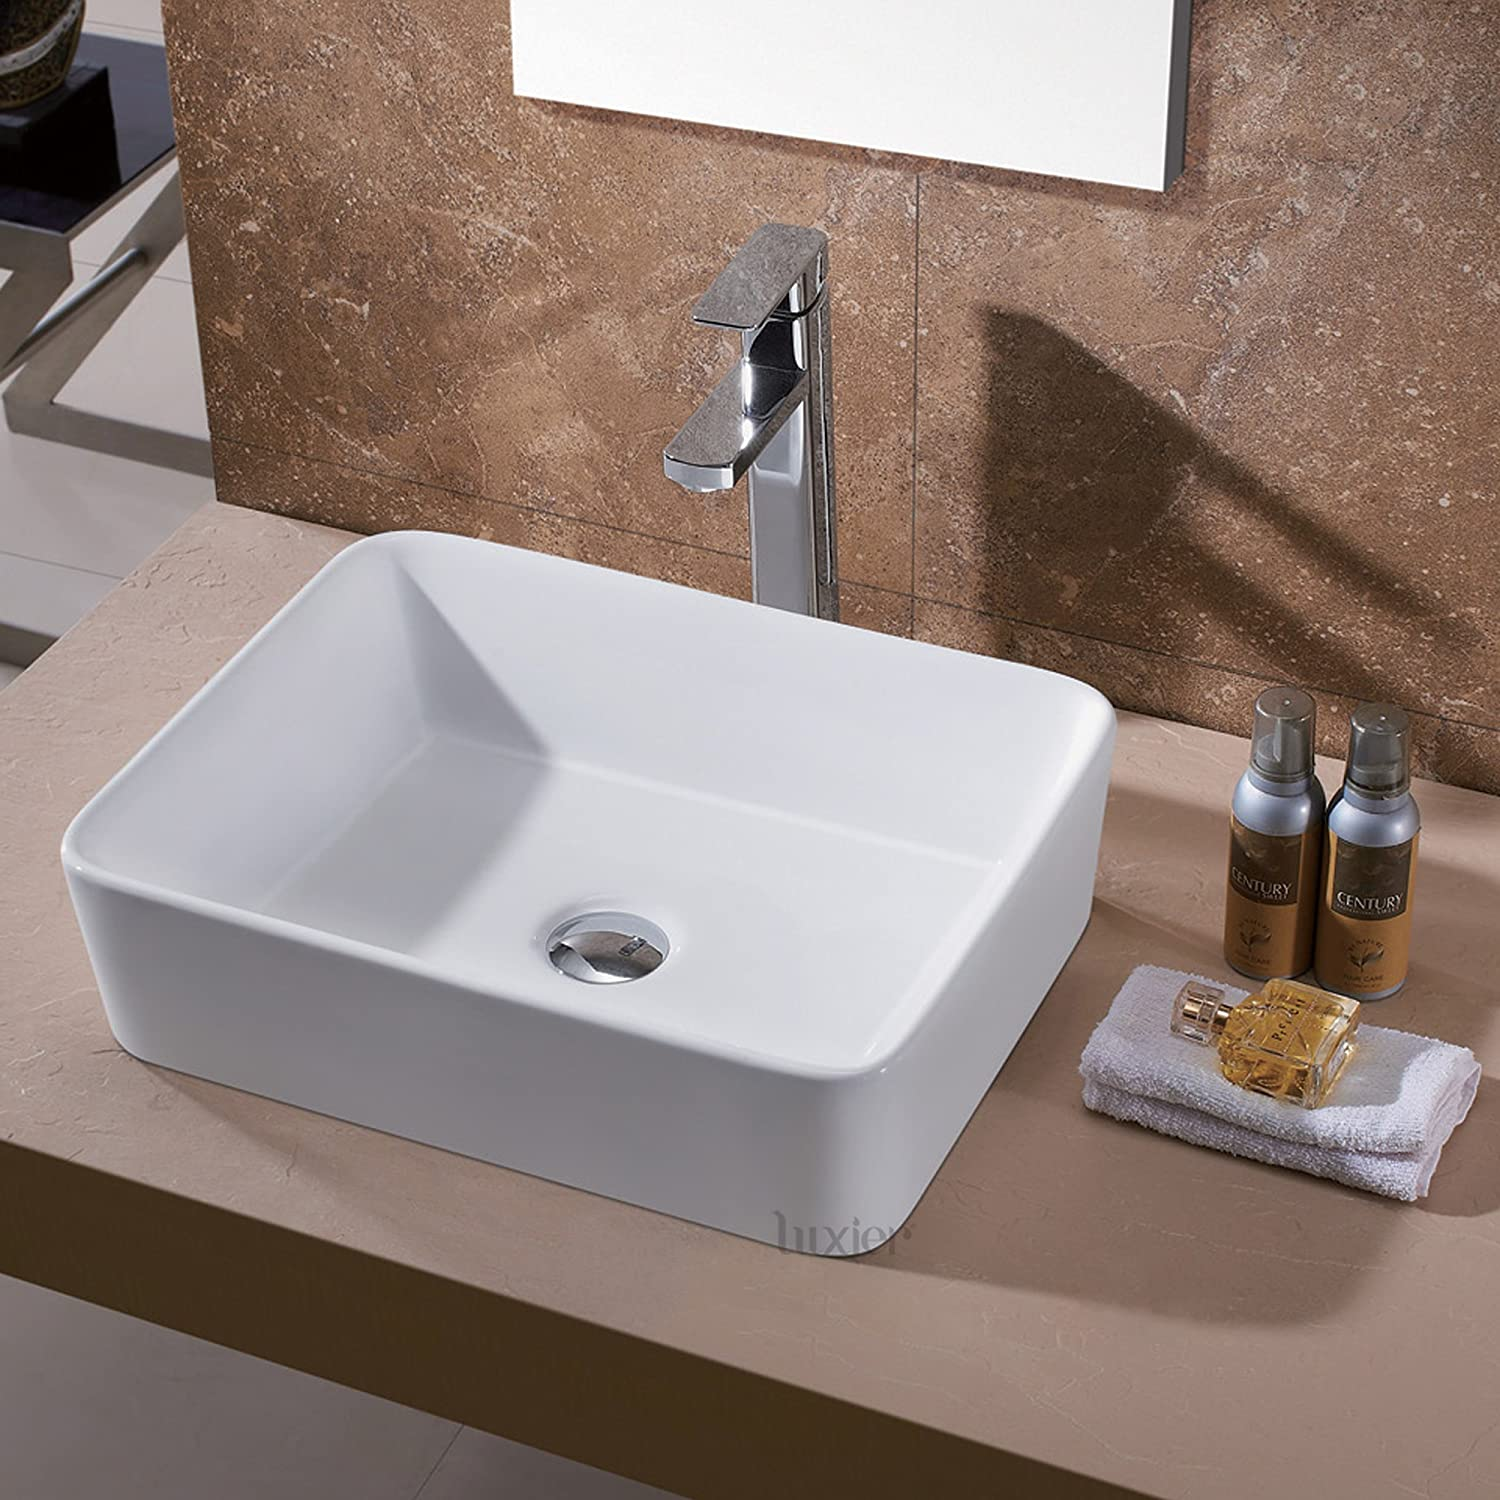 Luxier CS Bathroom Porcelain Ceramic Vessel Vanity Sink Art - Bathroom drain